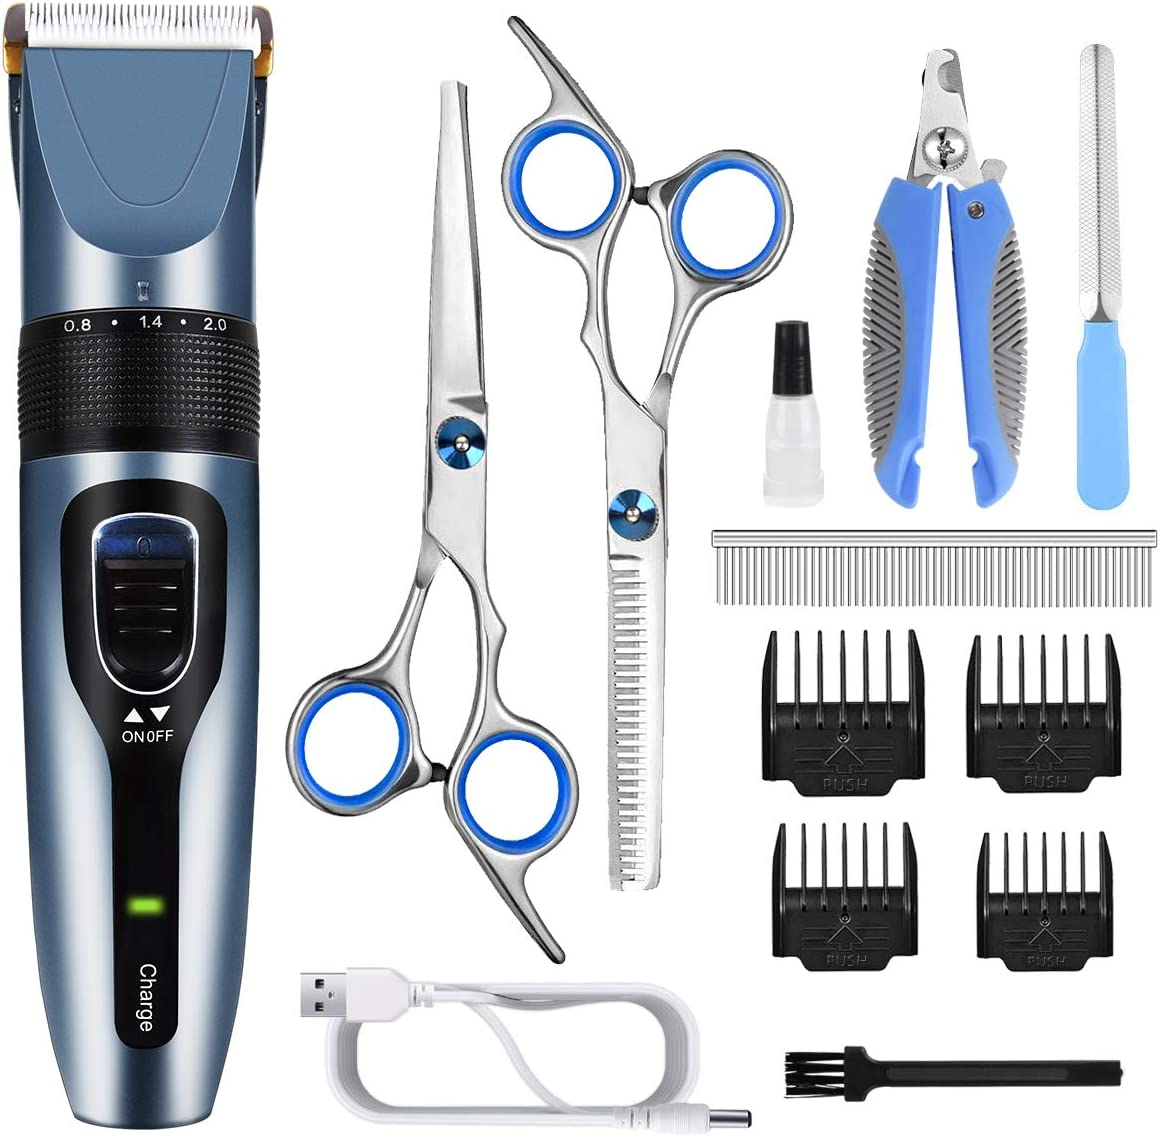 Rechargeable Cordless Dog Hair Trimmer Professional Dog Grooming Clipper Kit 3-Speed Low Noise Electric Hair Cutting Kit with Sharp Blade and High Power for Thick Heavy Coats Pets Dog Clippers